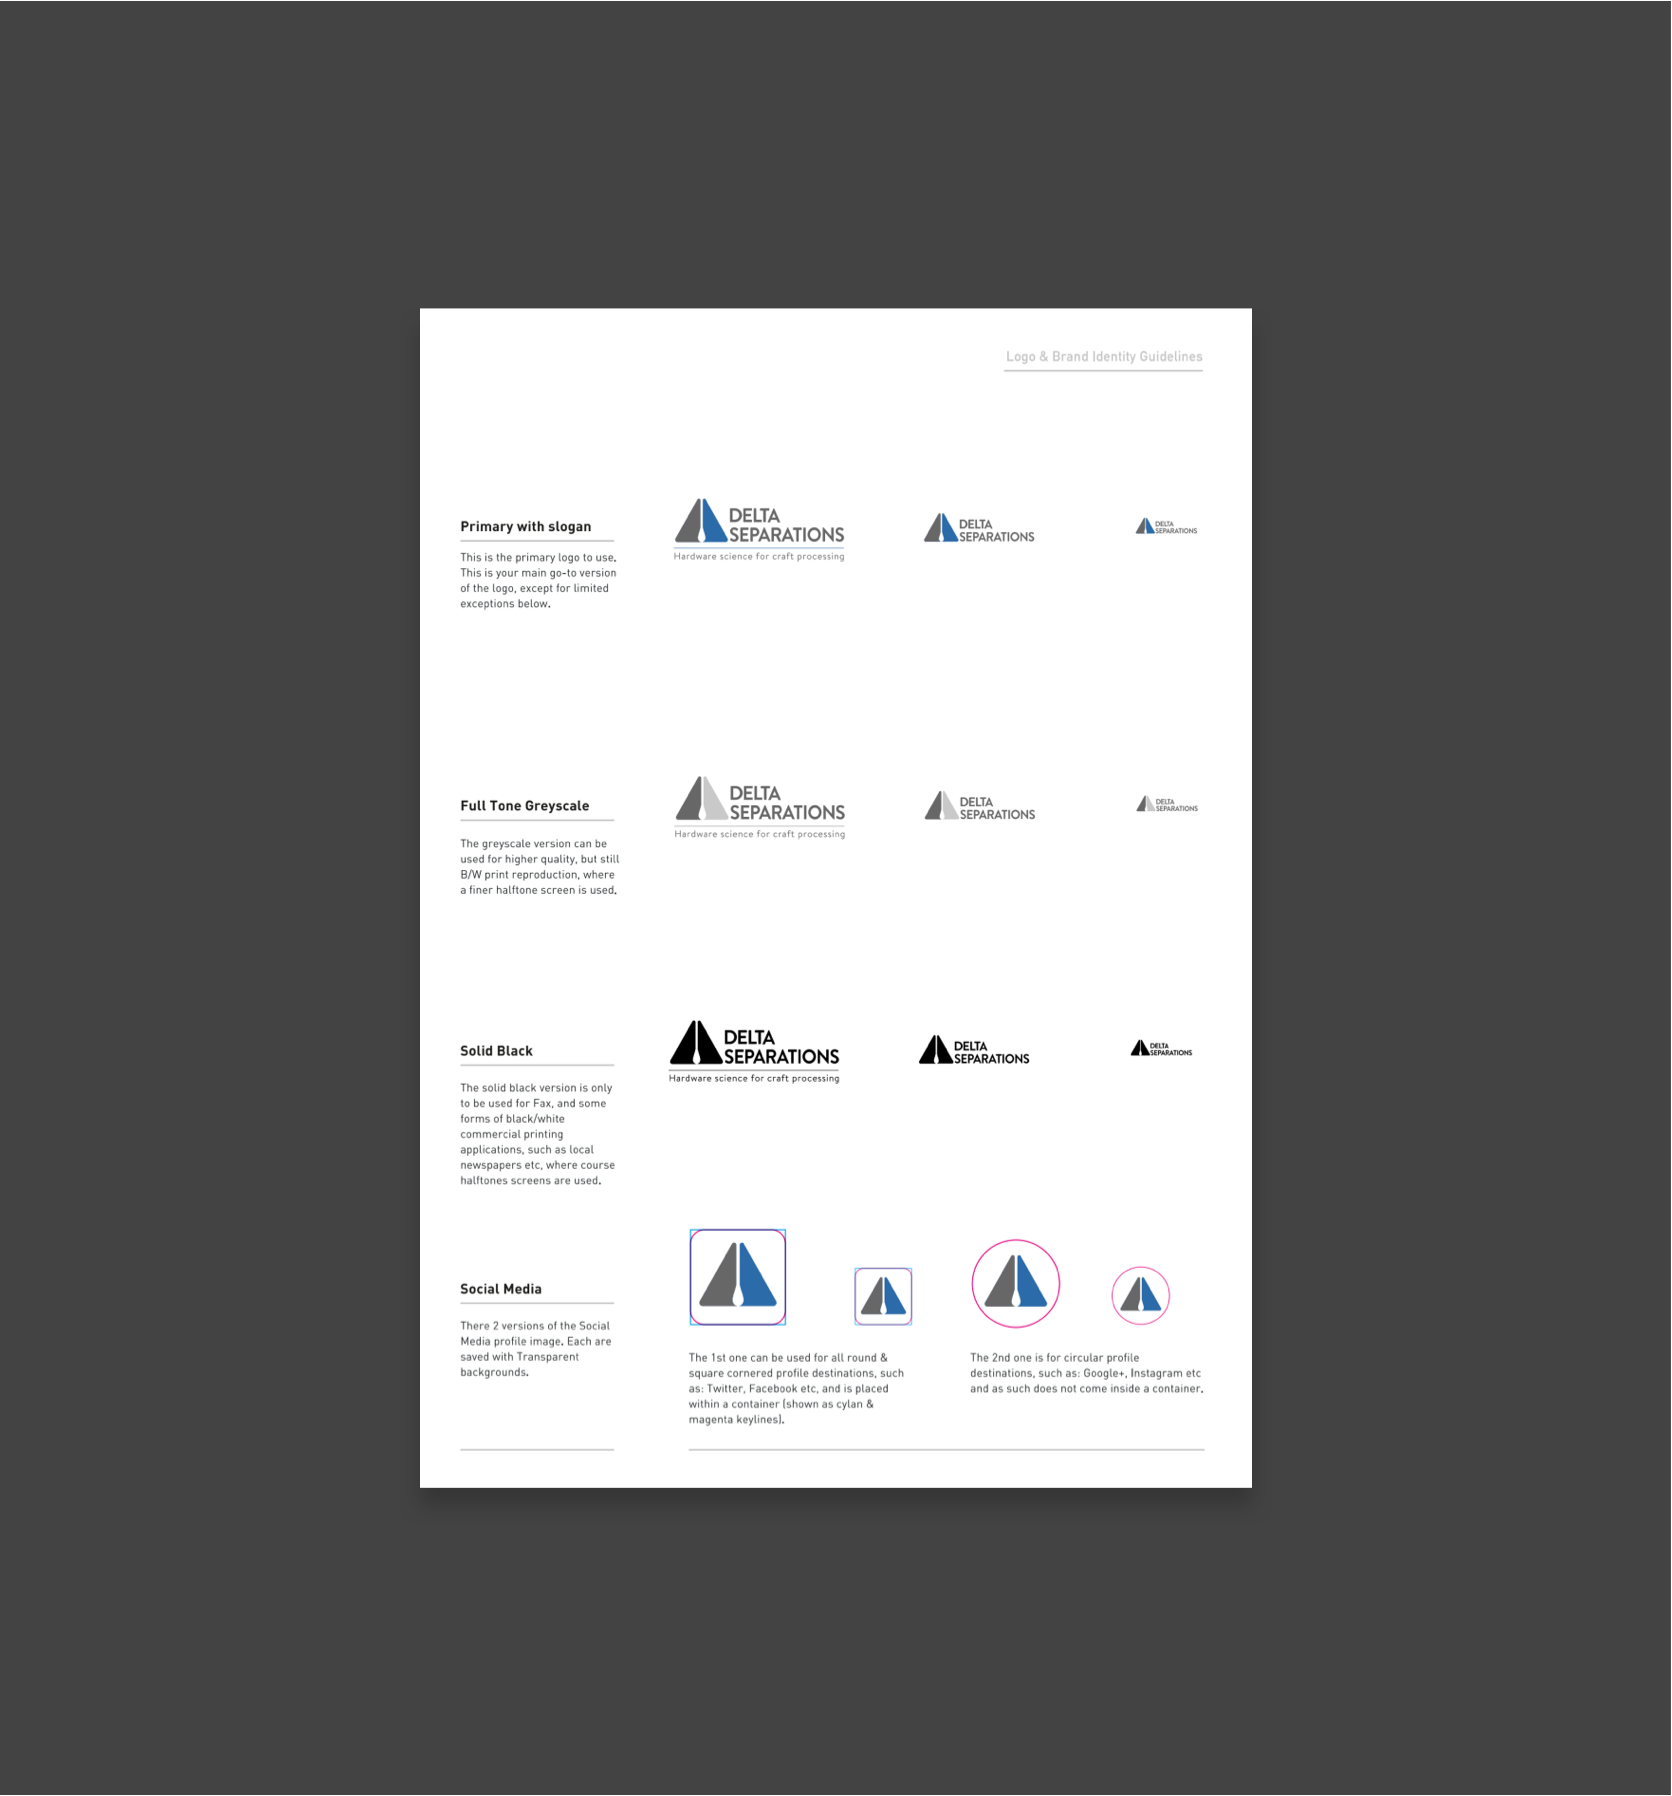 delta style guide showing usage guidelines